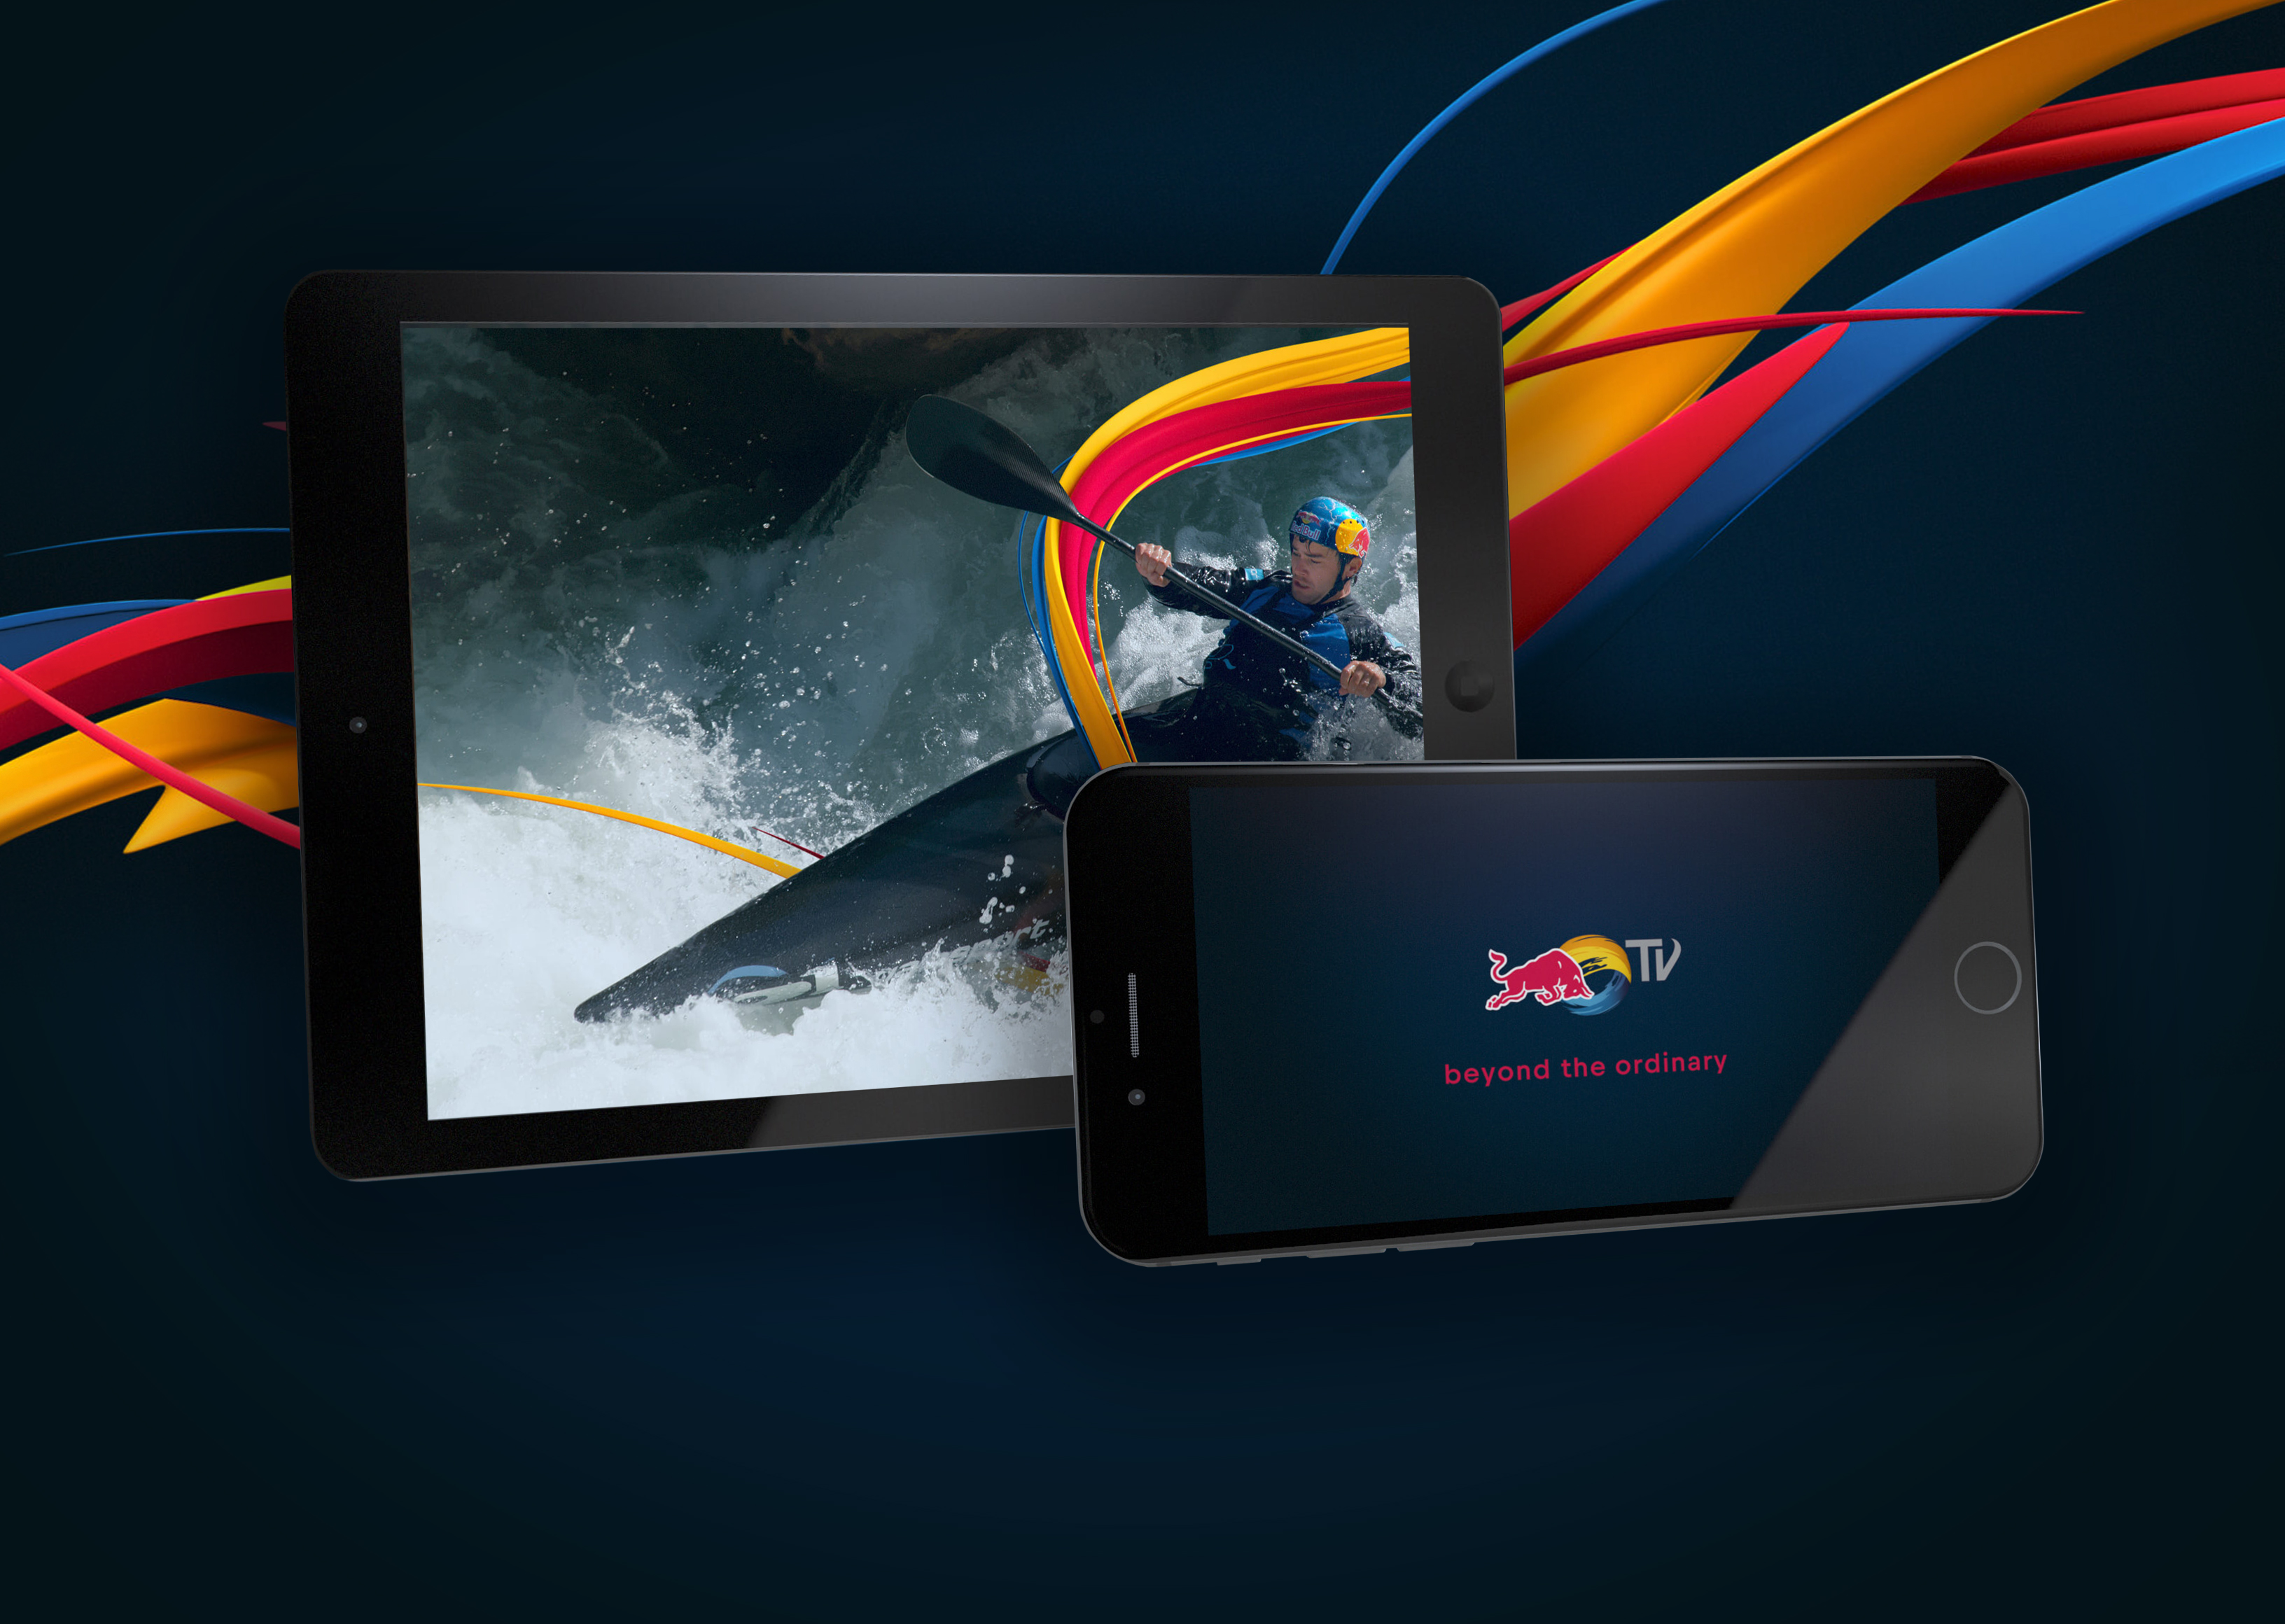 REDBULL TV: GLOBAL DESIGN